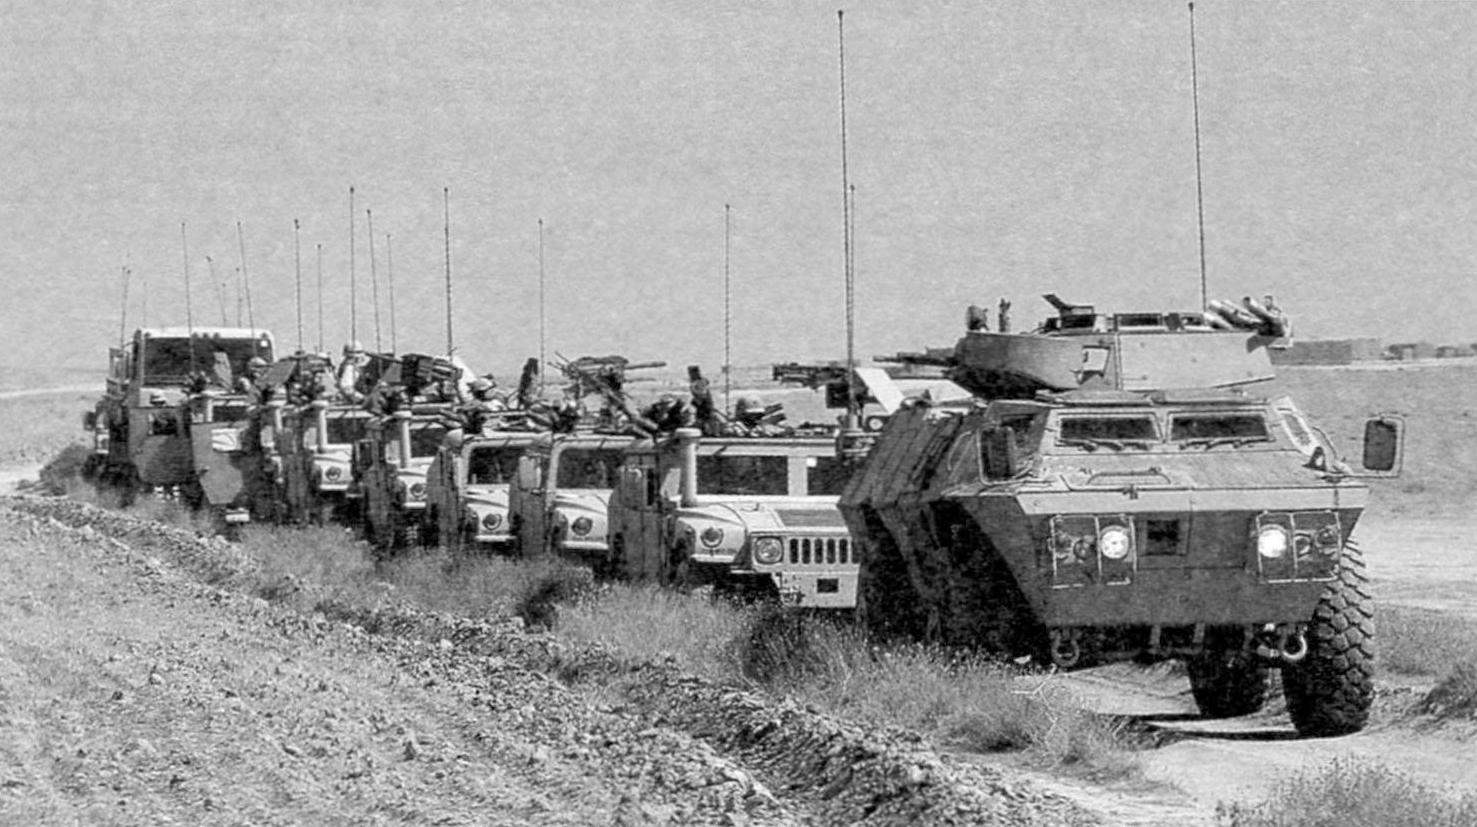 M 1117 accompanied by a convoy of armored cars